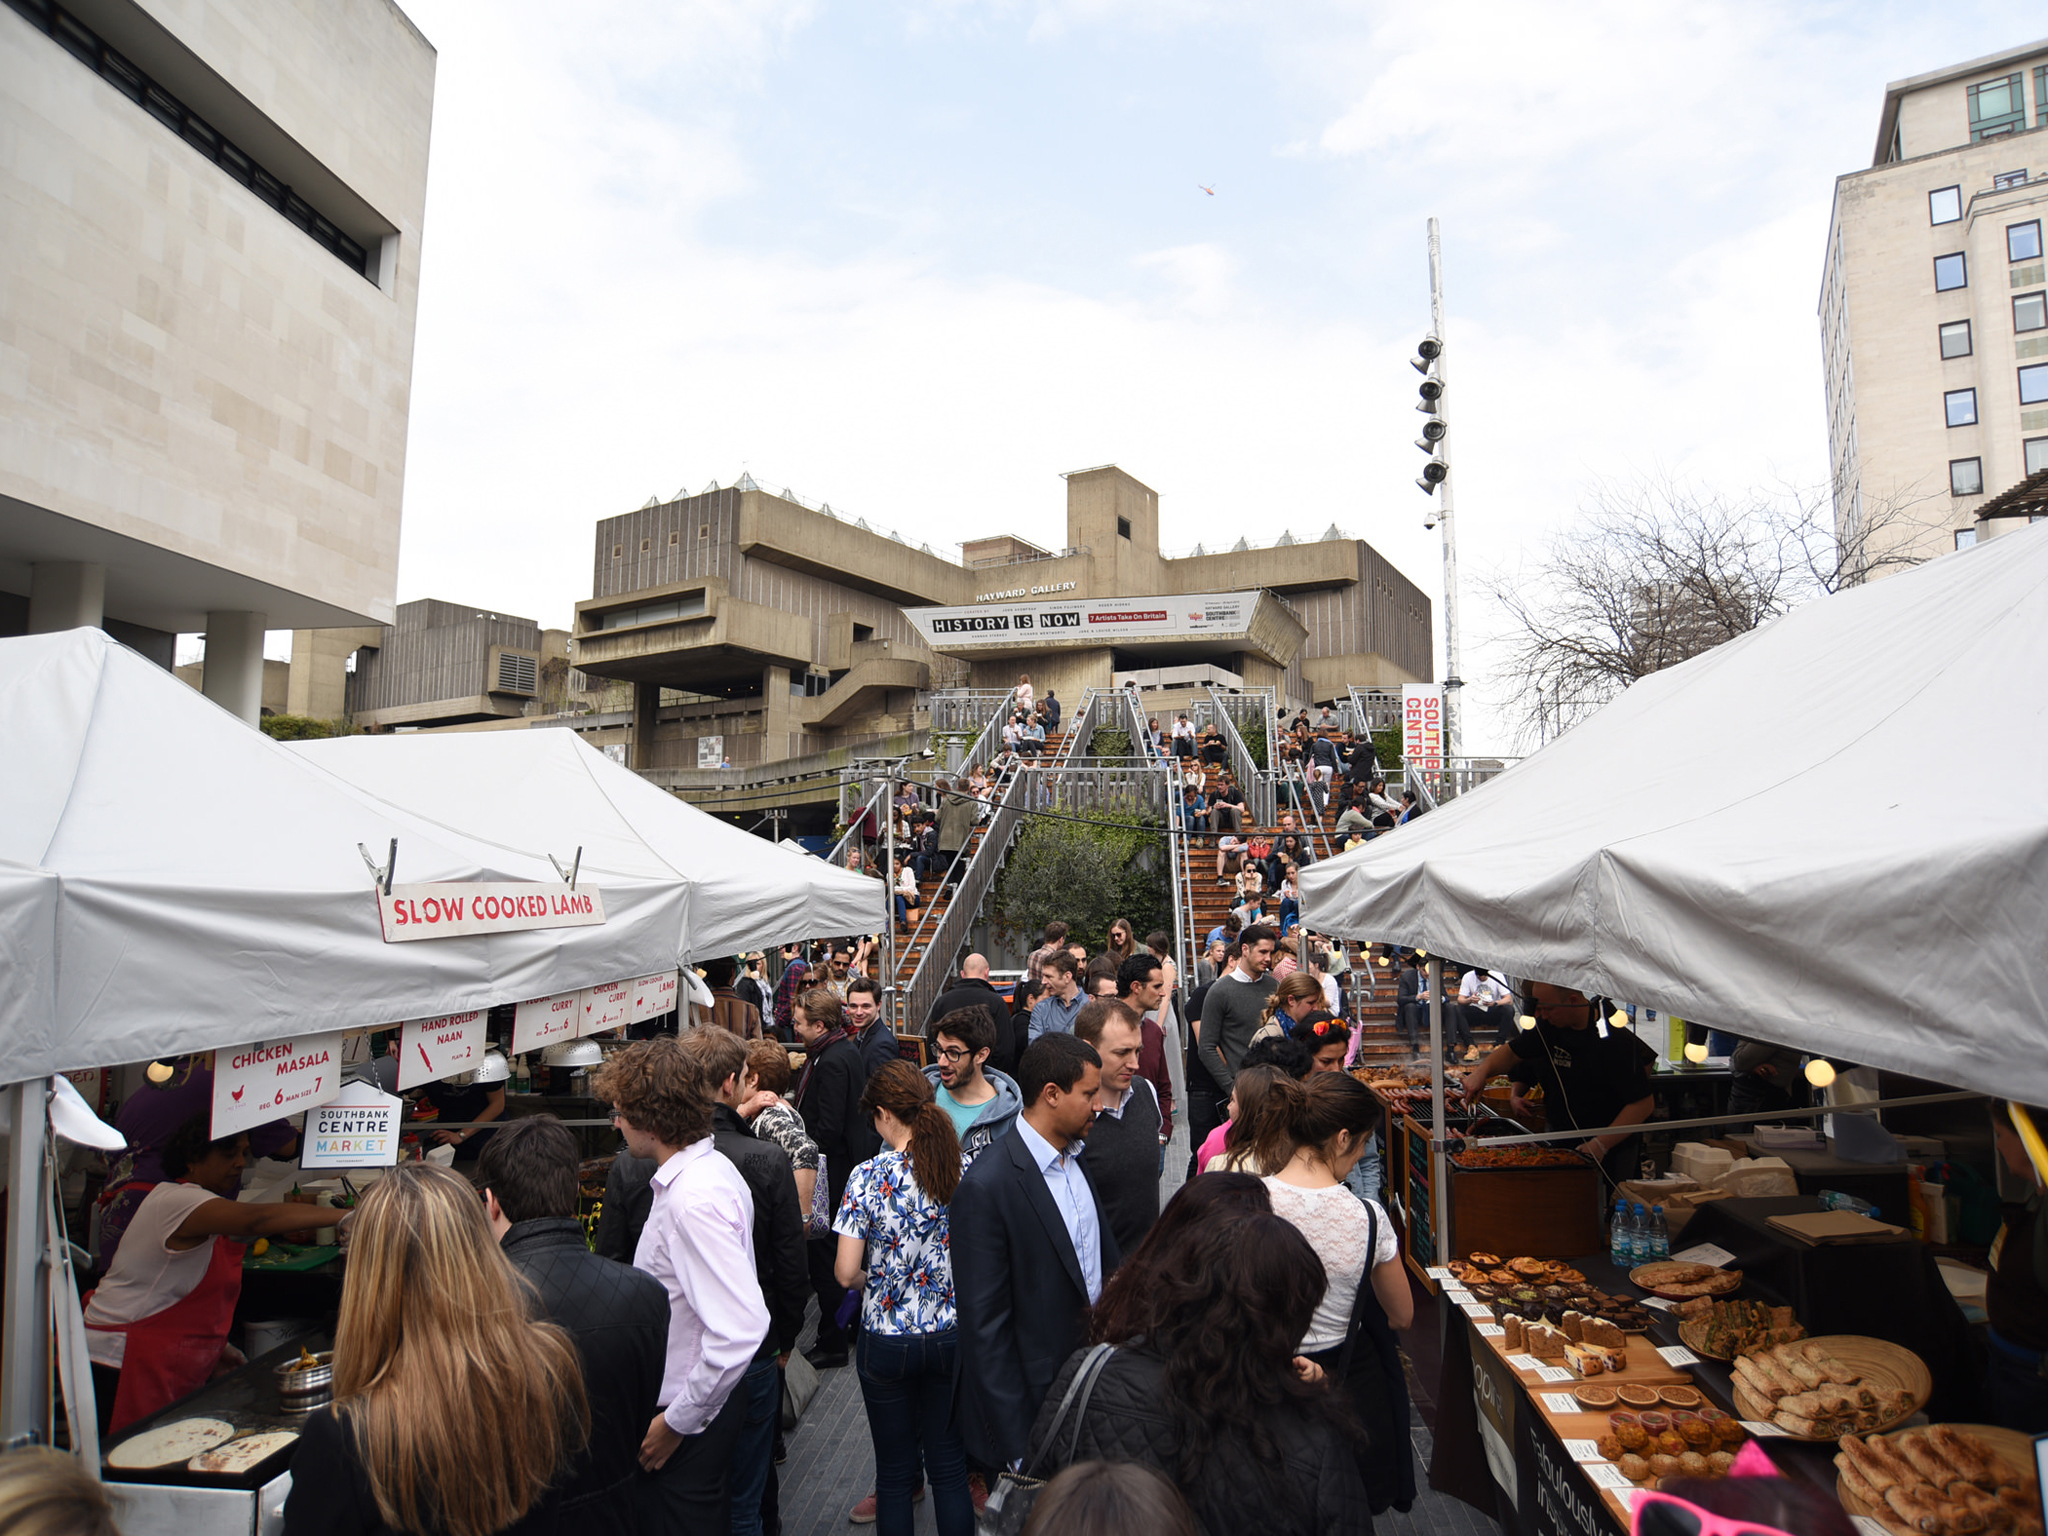 Eat your way around the world at the Southbank Centre food market